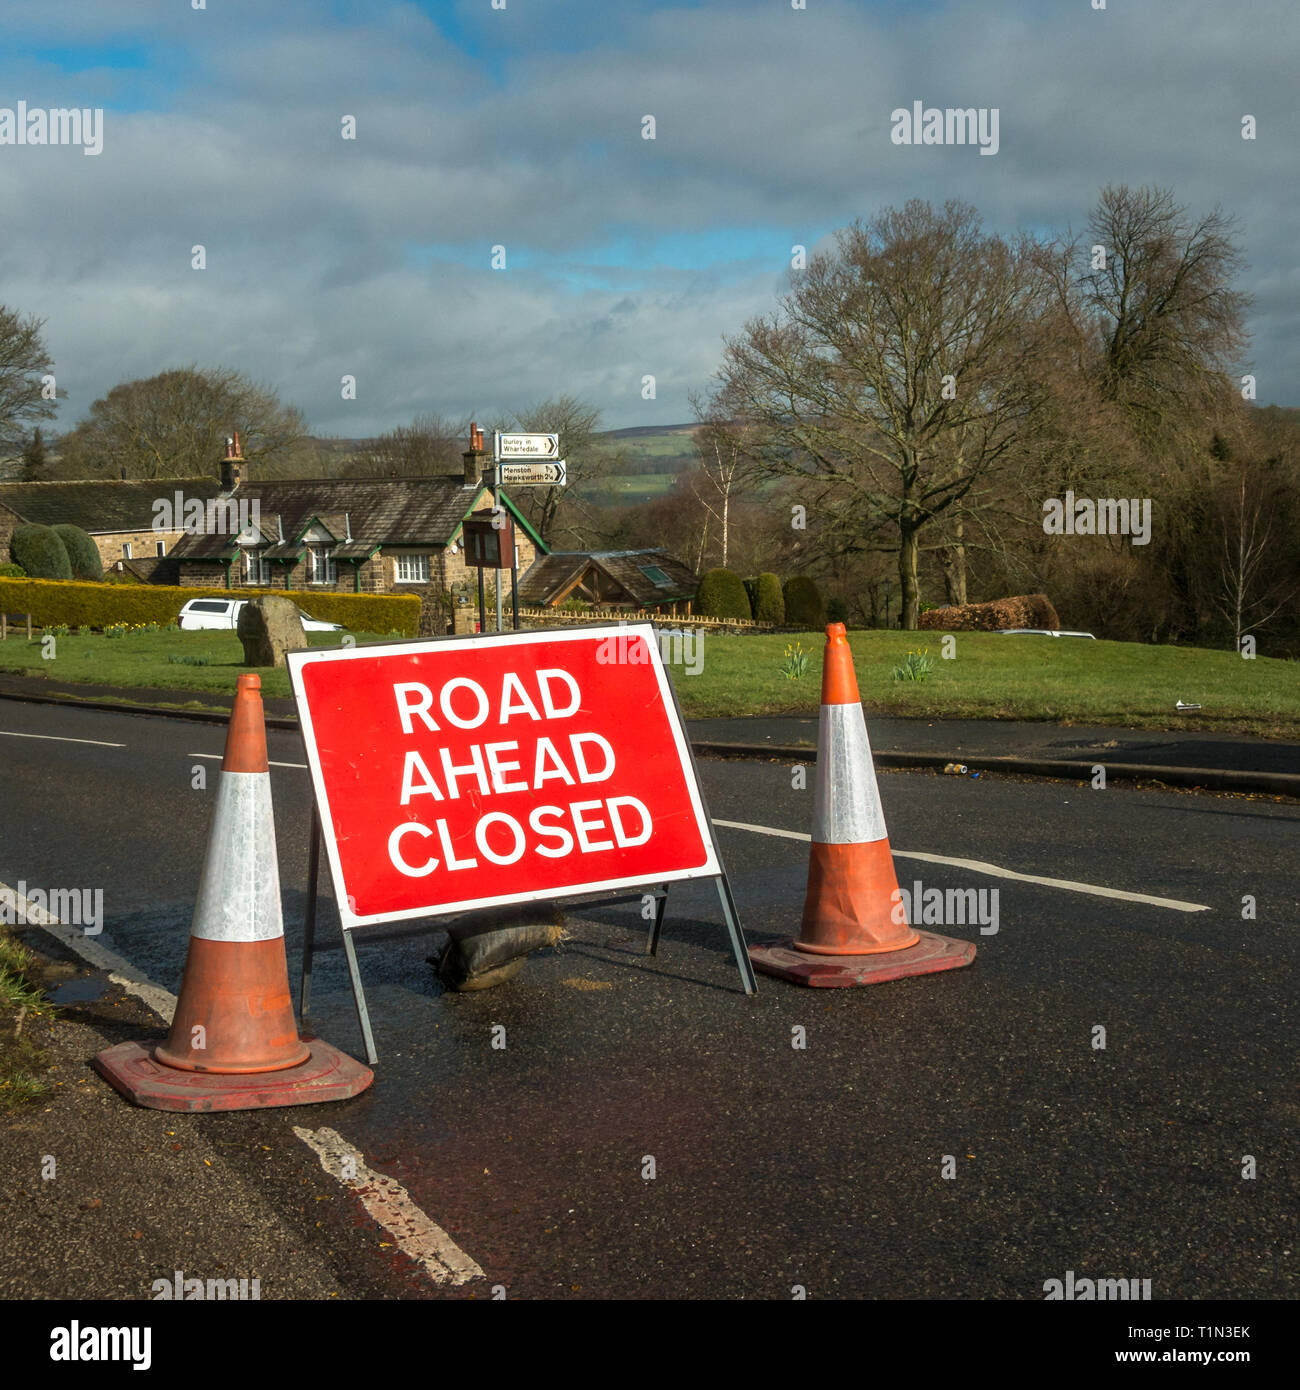 Road block with road ahead closed sign and traffic cones at Burley Woodhead leading to Ilkley, over Ilkley moor, West Yorkshire, UK - Stock Image